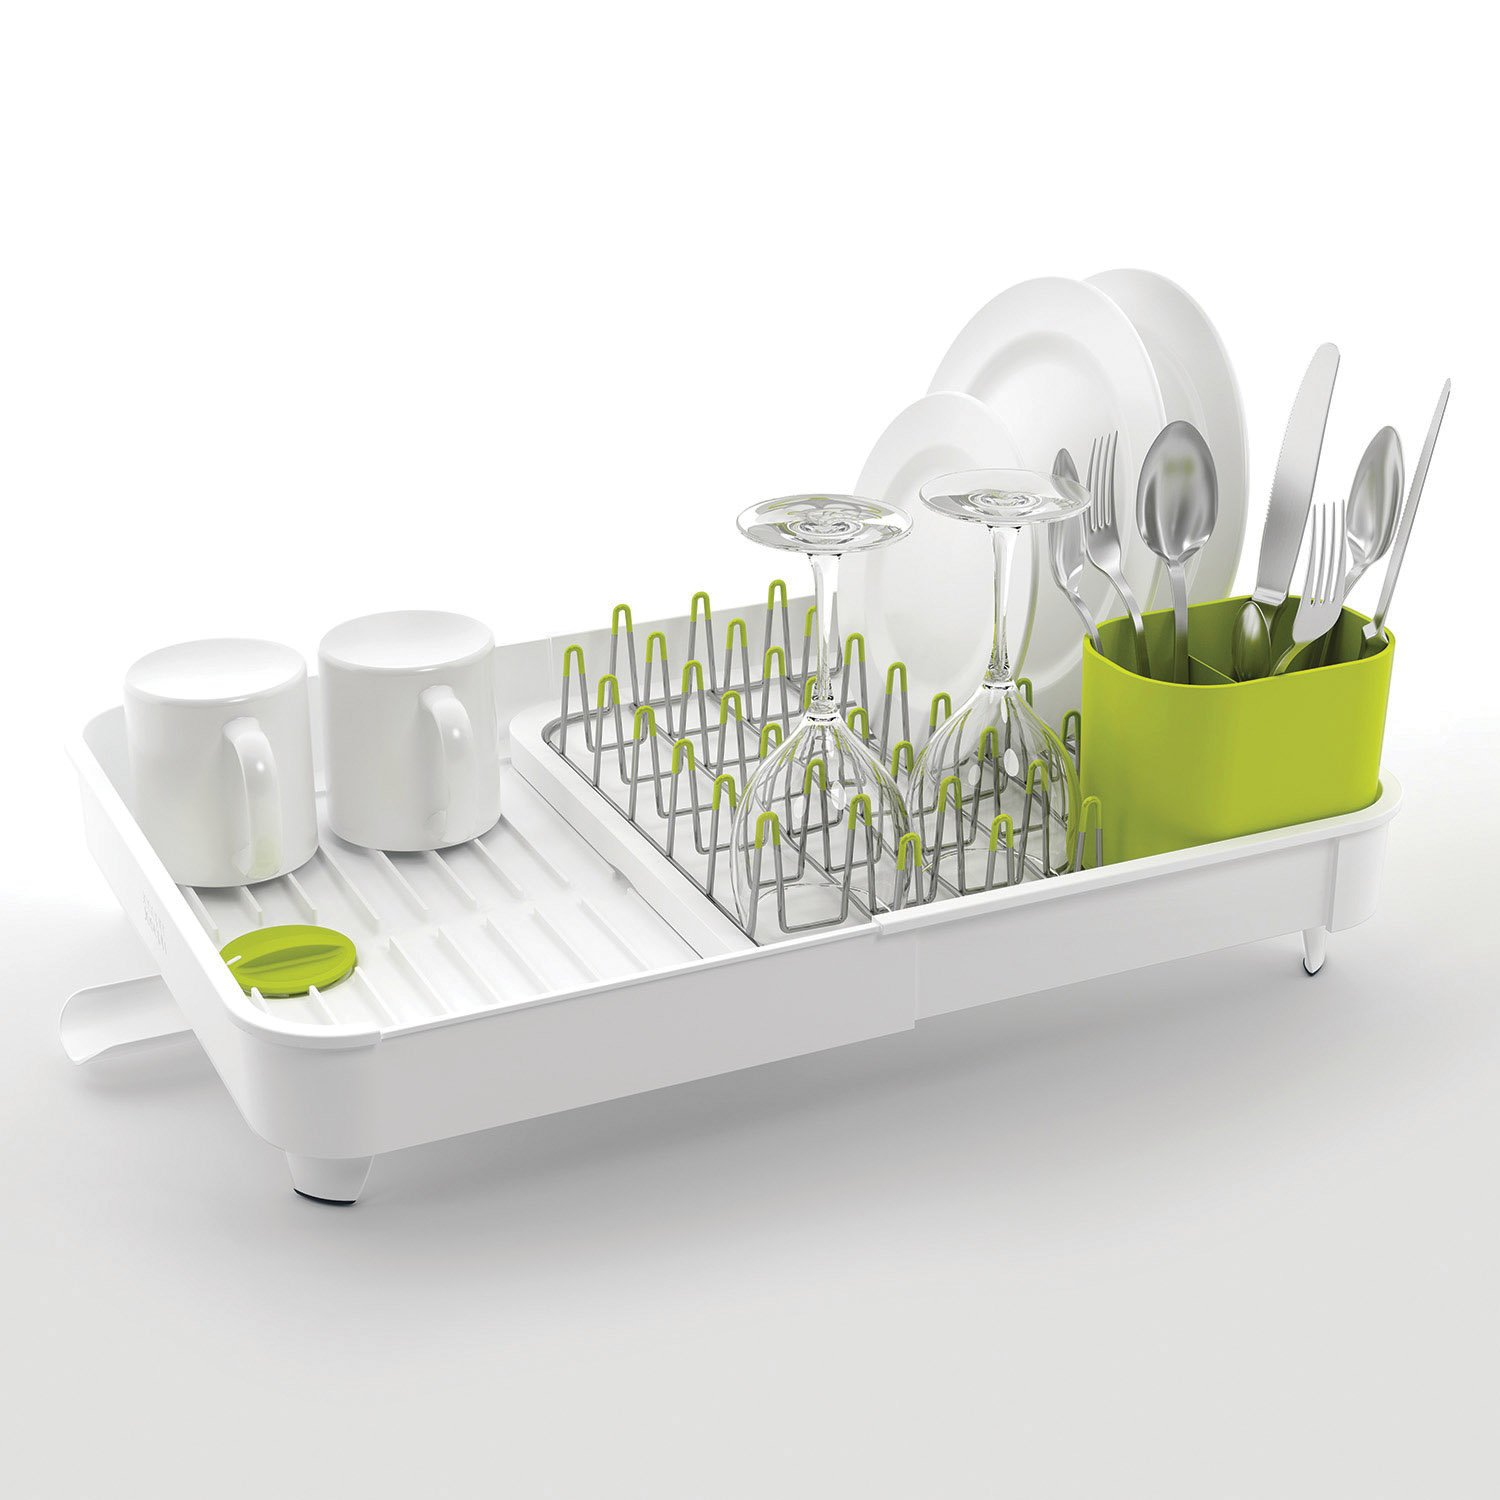 Joseph joseph extend dish drying rack